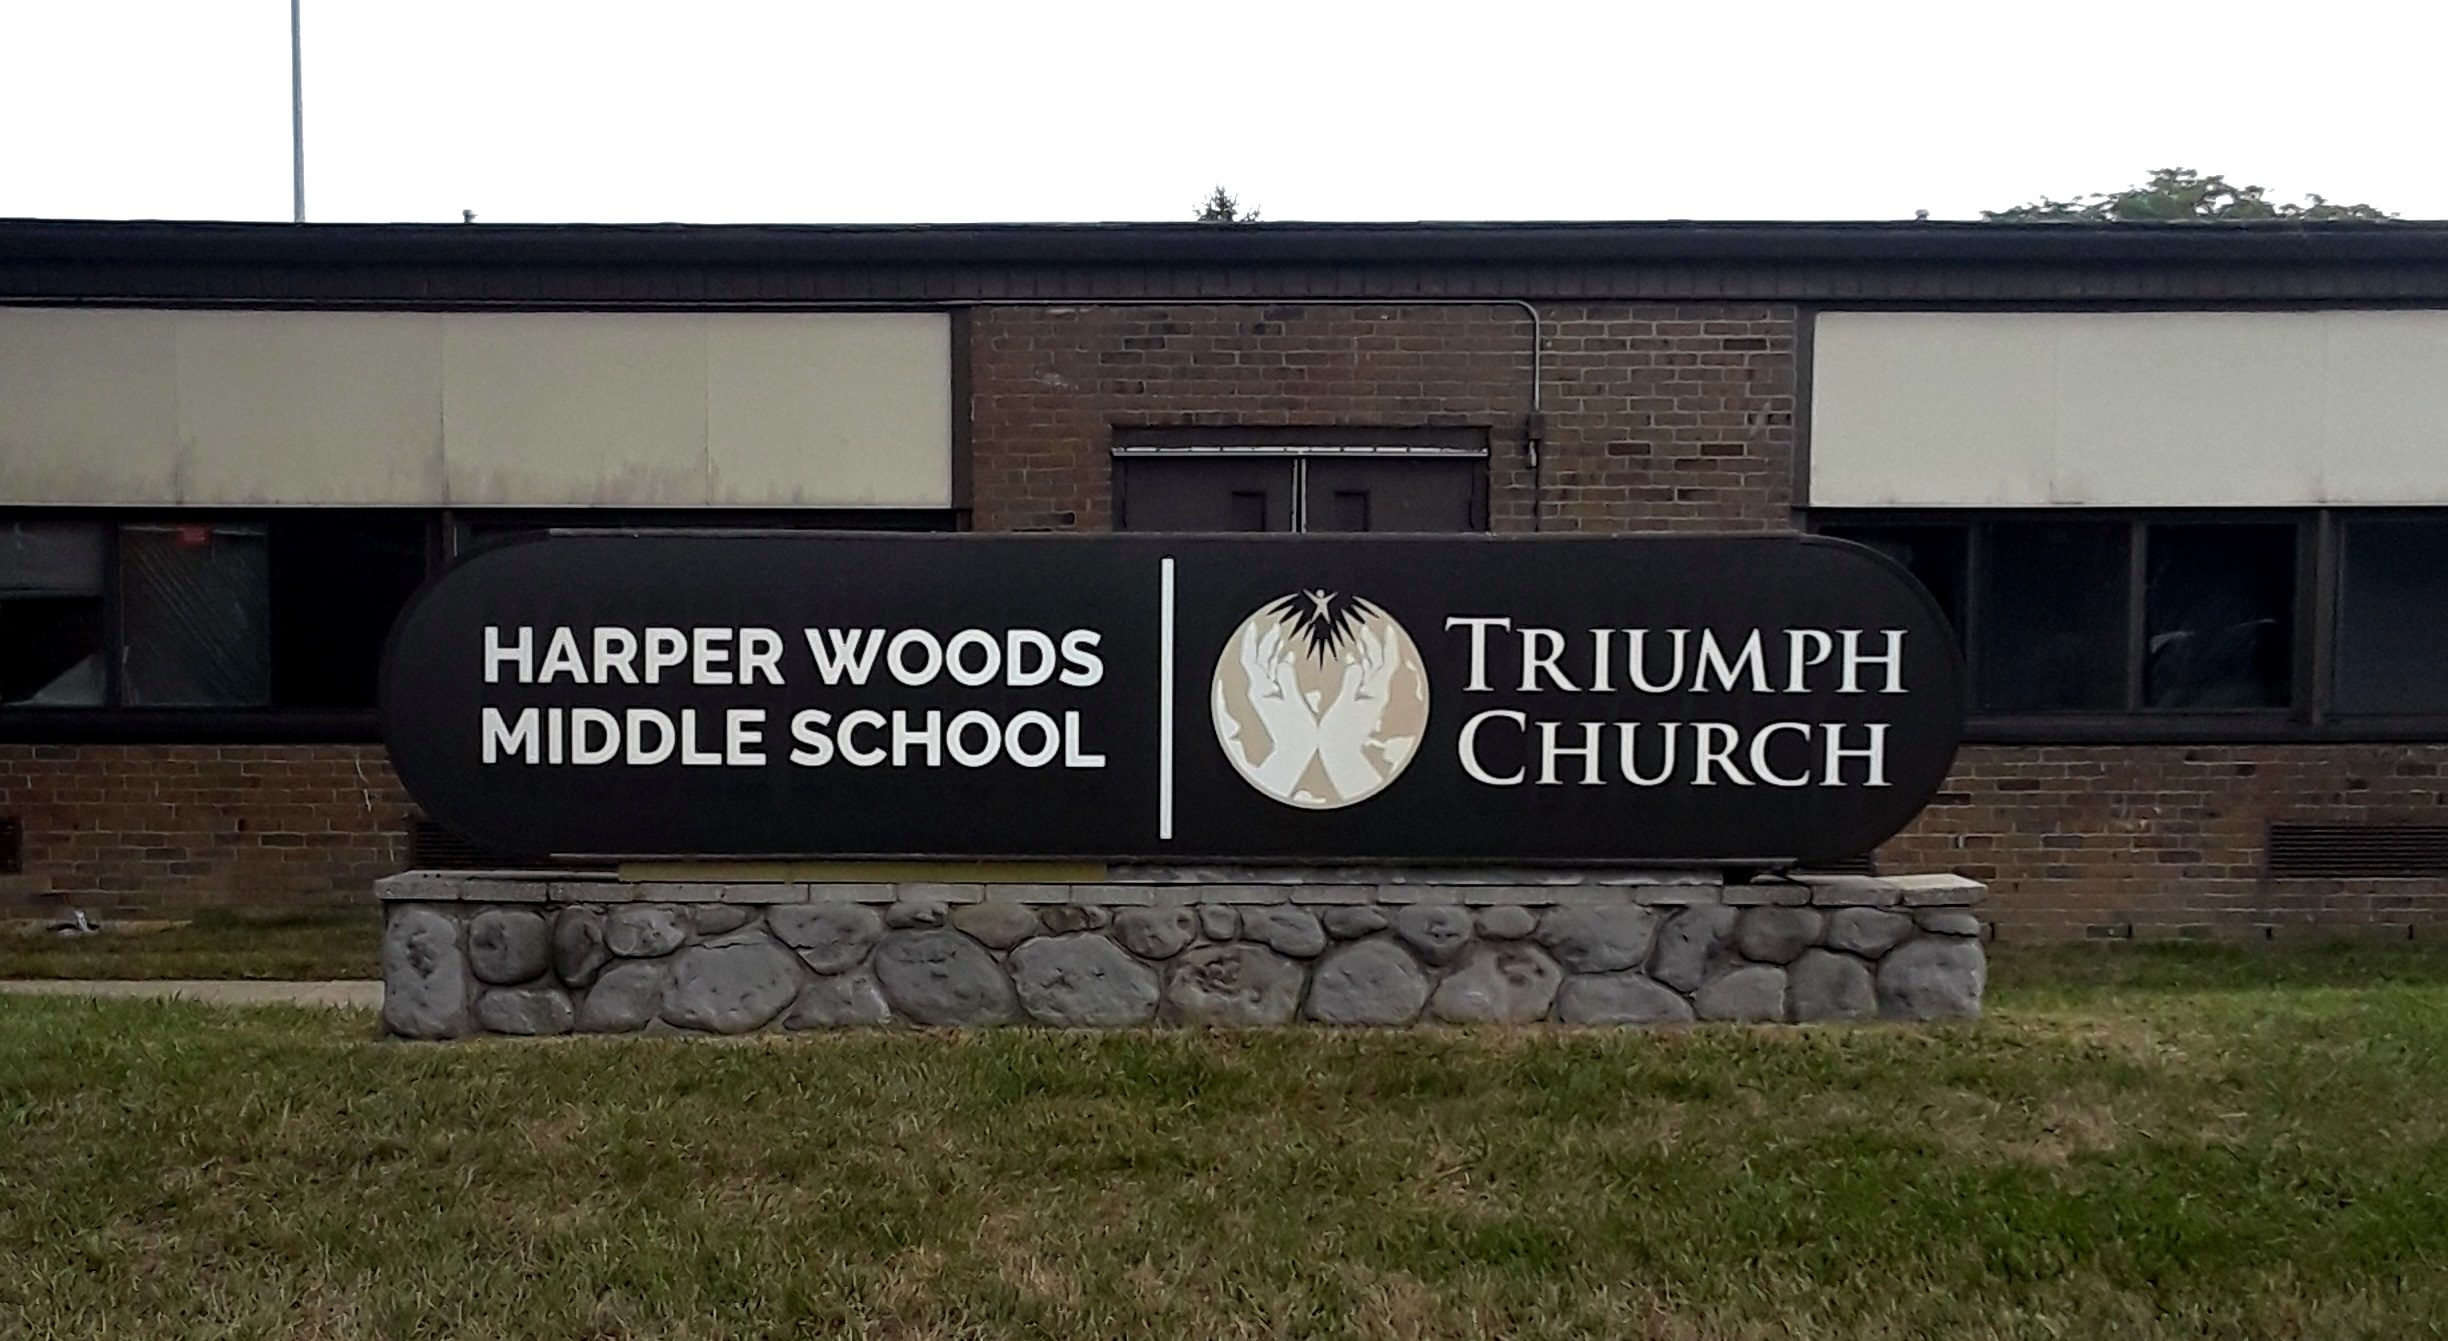 Harper Woods Triumph Church - Harper Woods